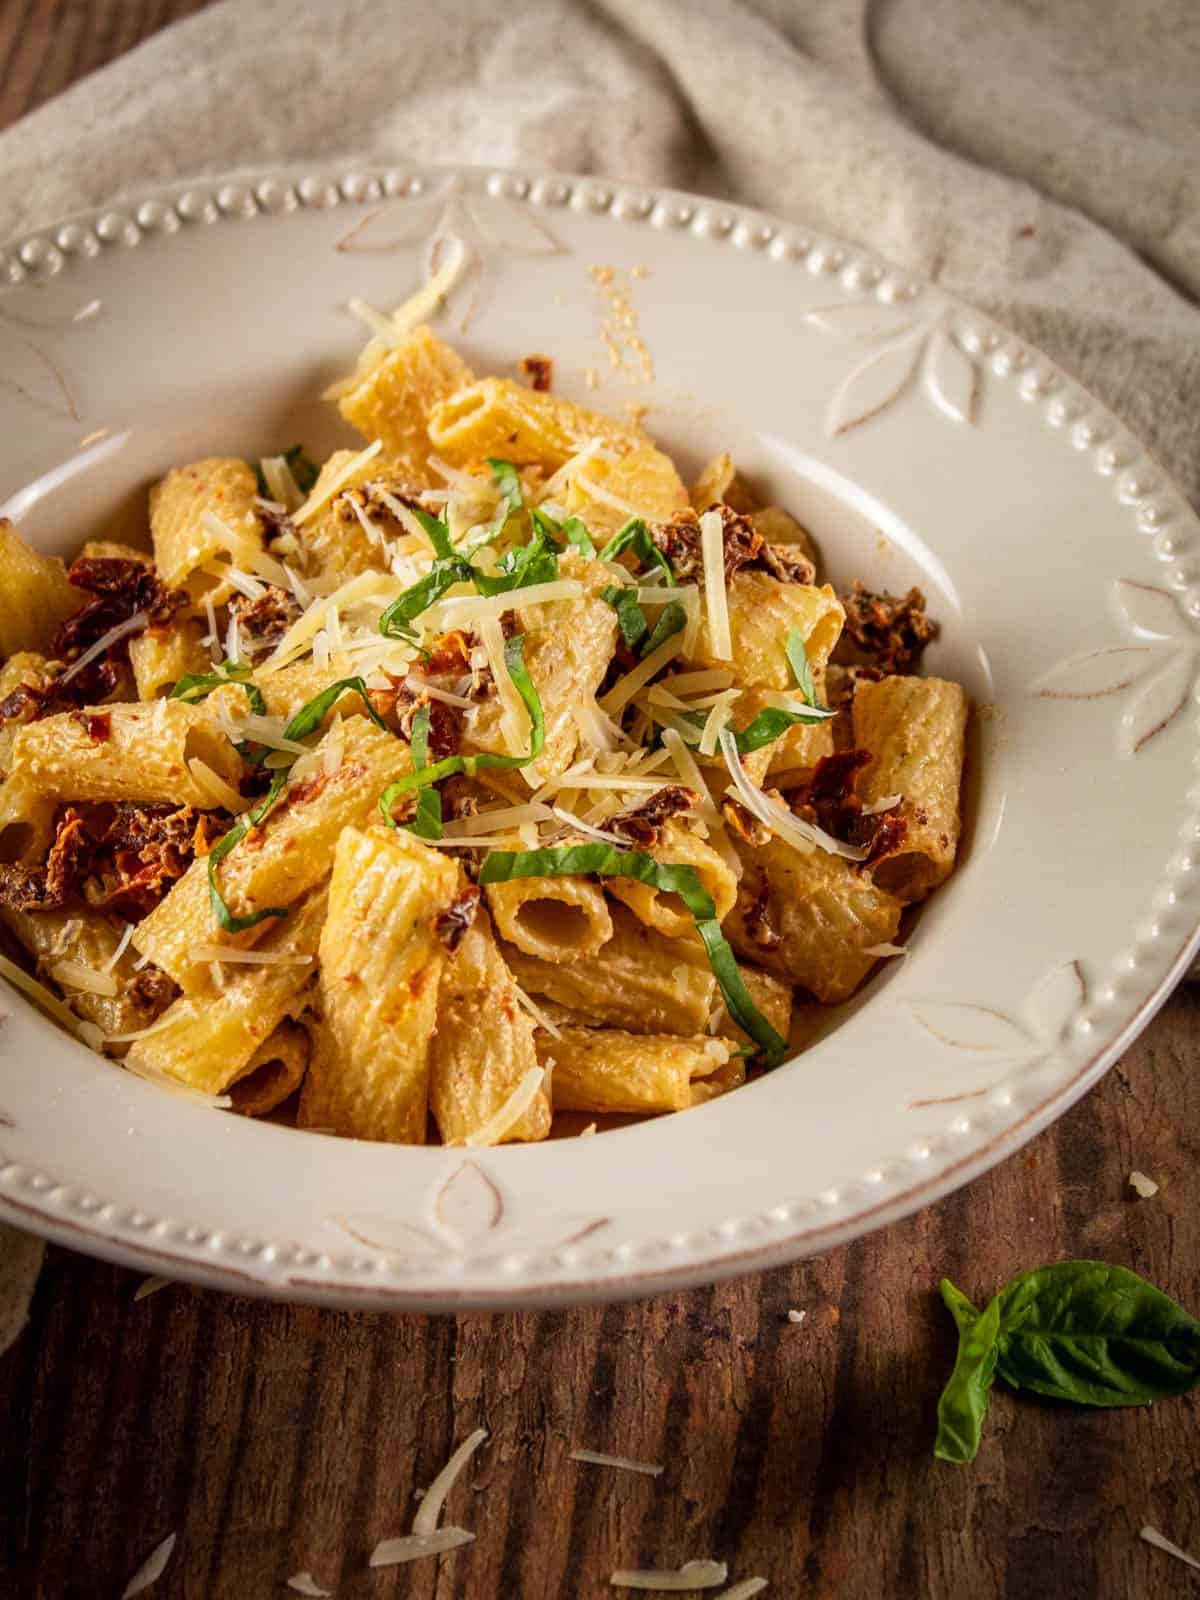 bowl of rigatoni pasta with sundried tomatoes and fresh basil